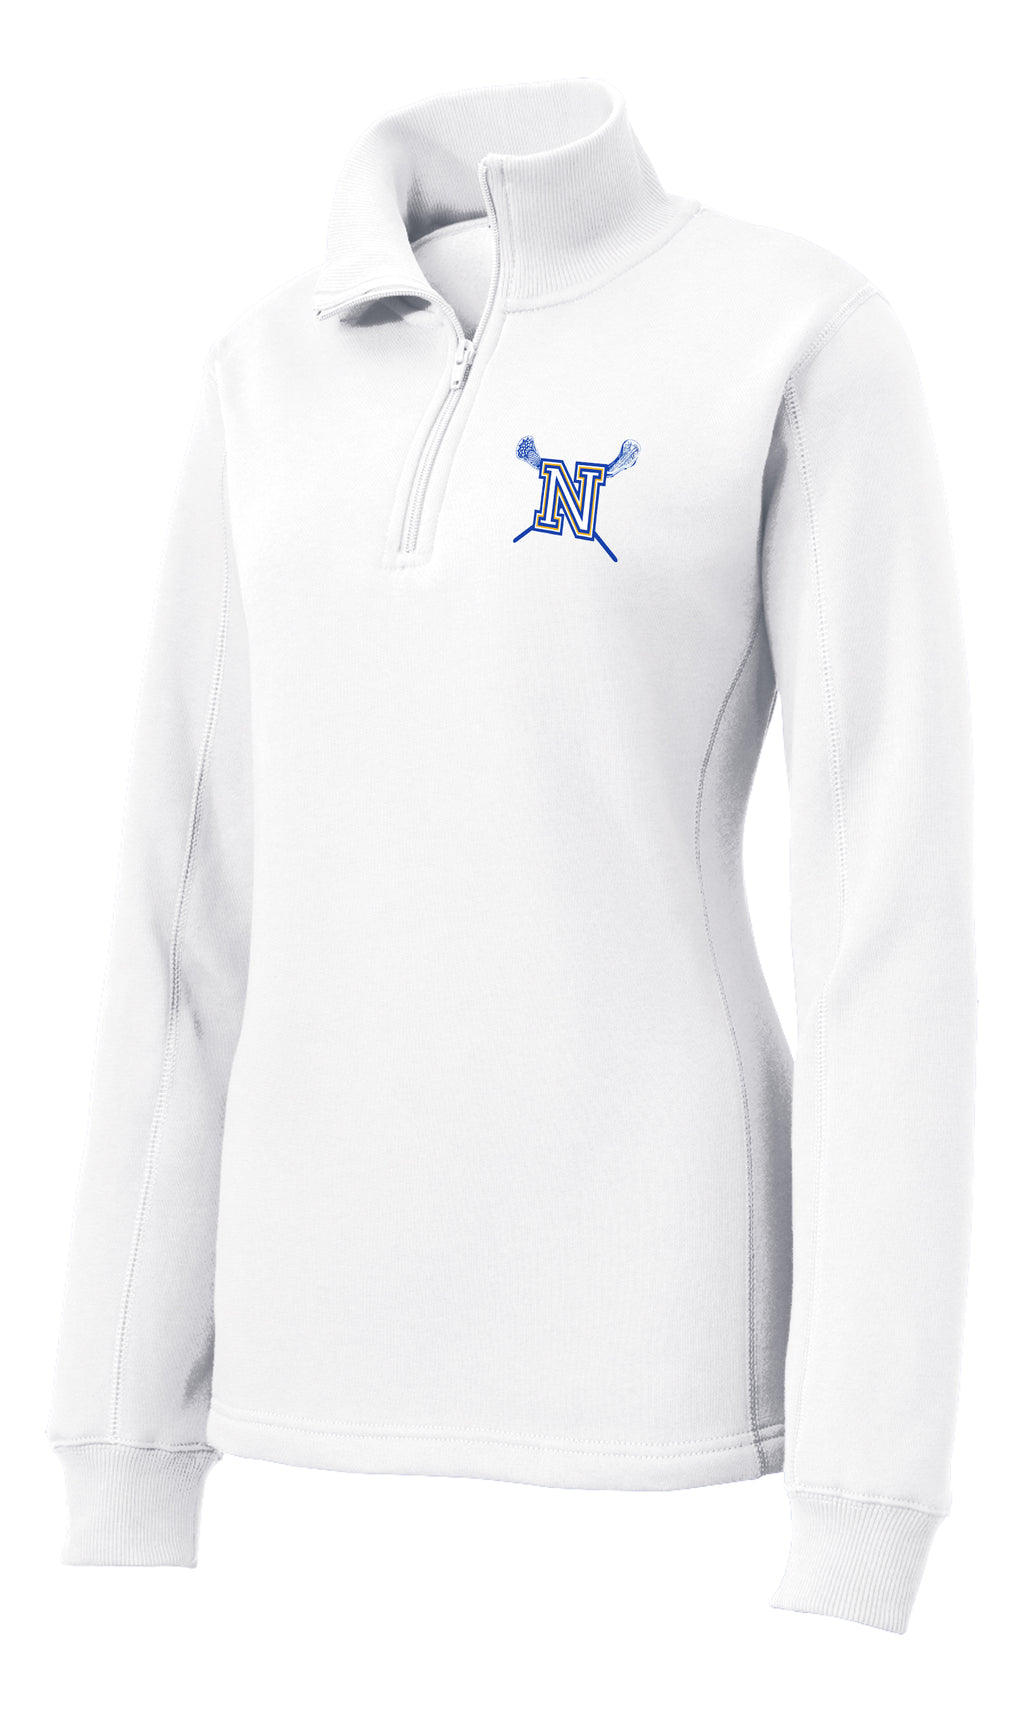 Newington Lacrosse Women's White 1/4 Zip Fleece